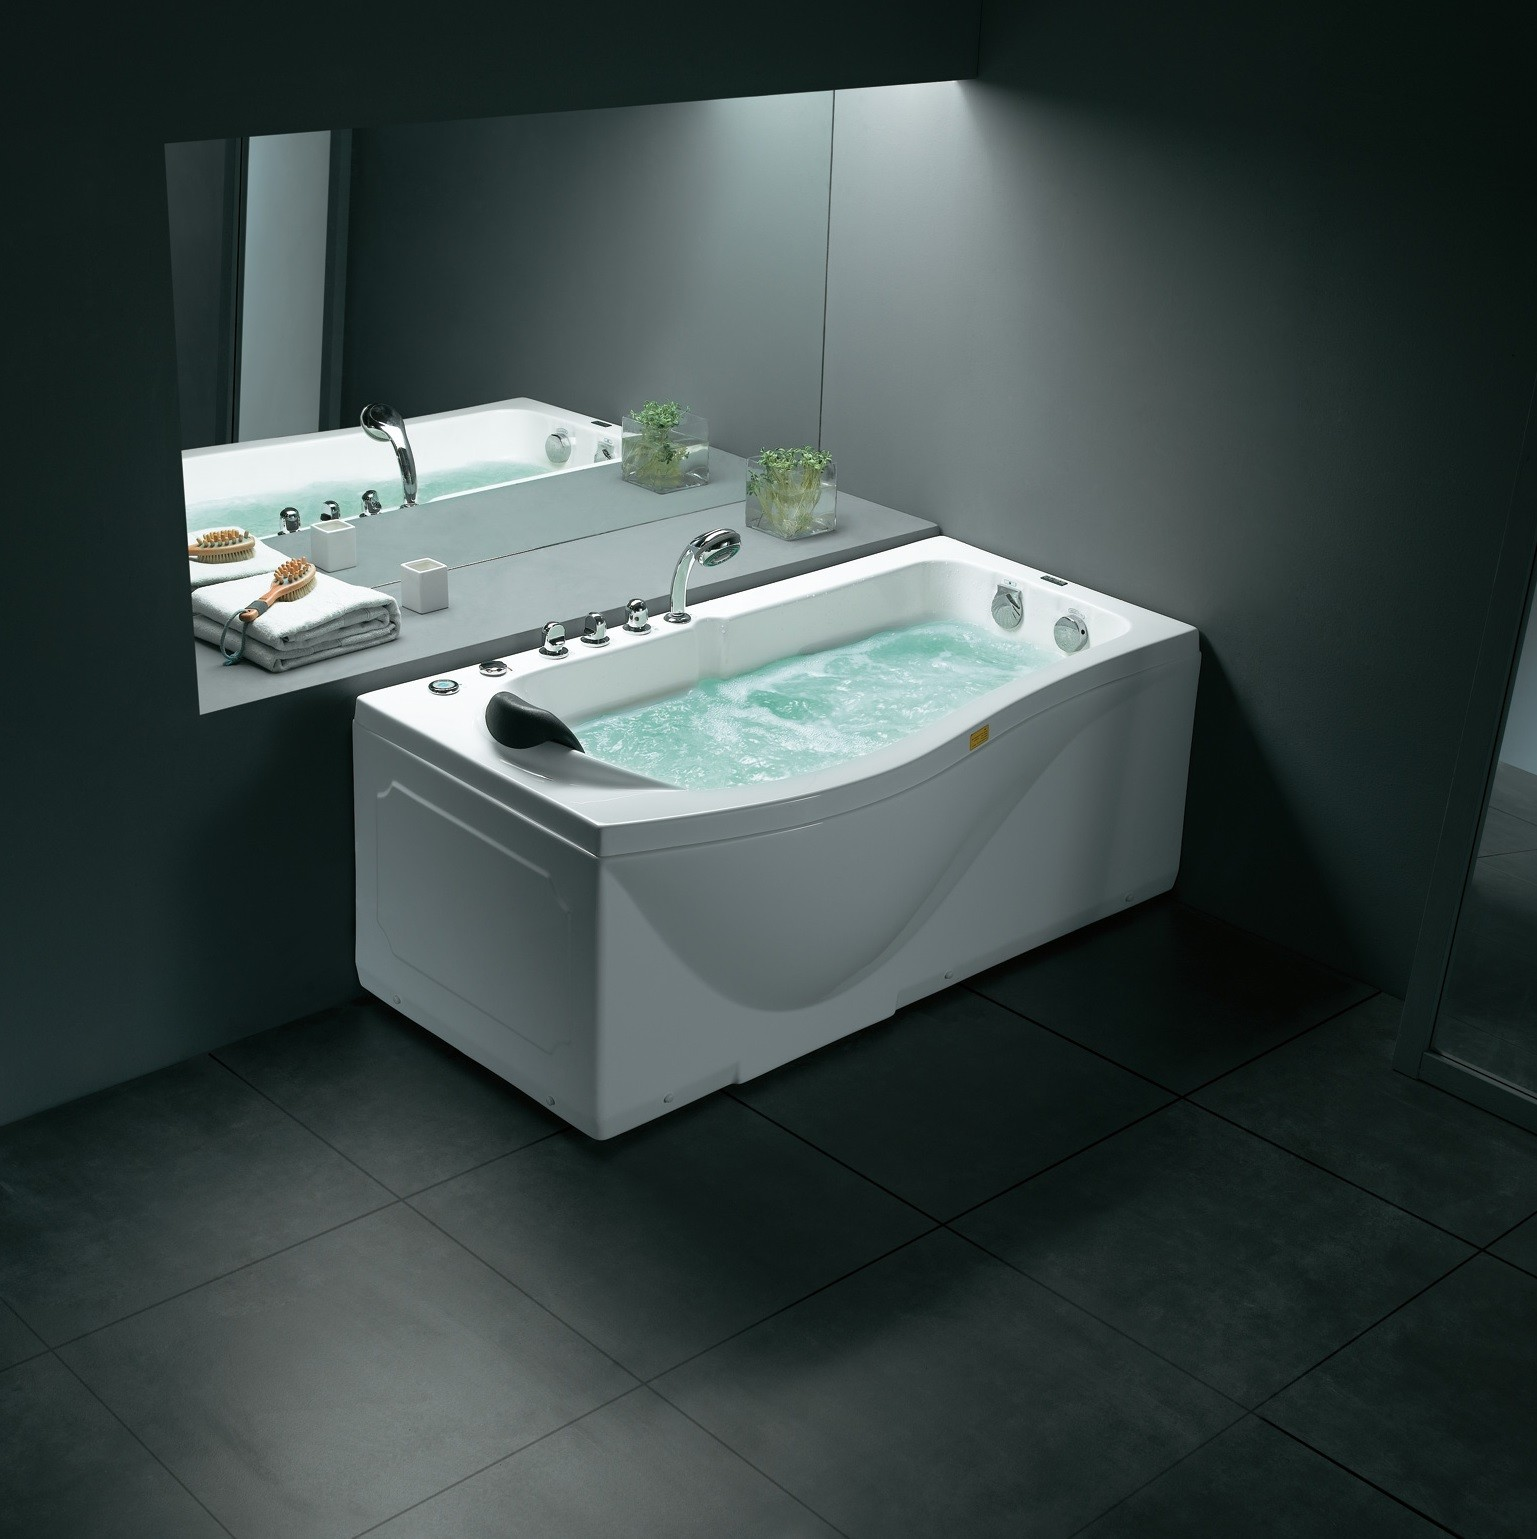 Clearwater Luxury Whirlpool Tub